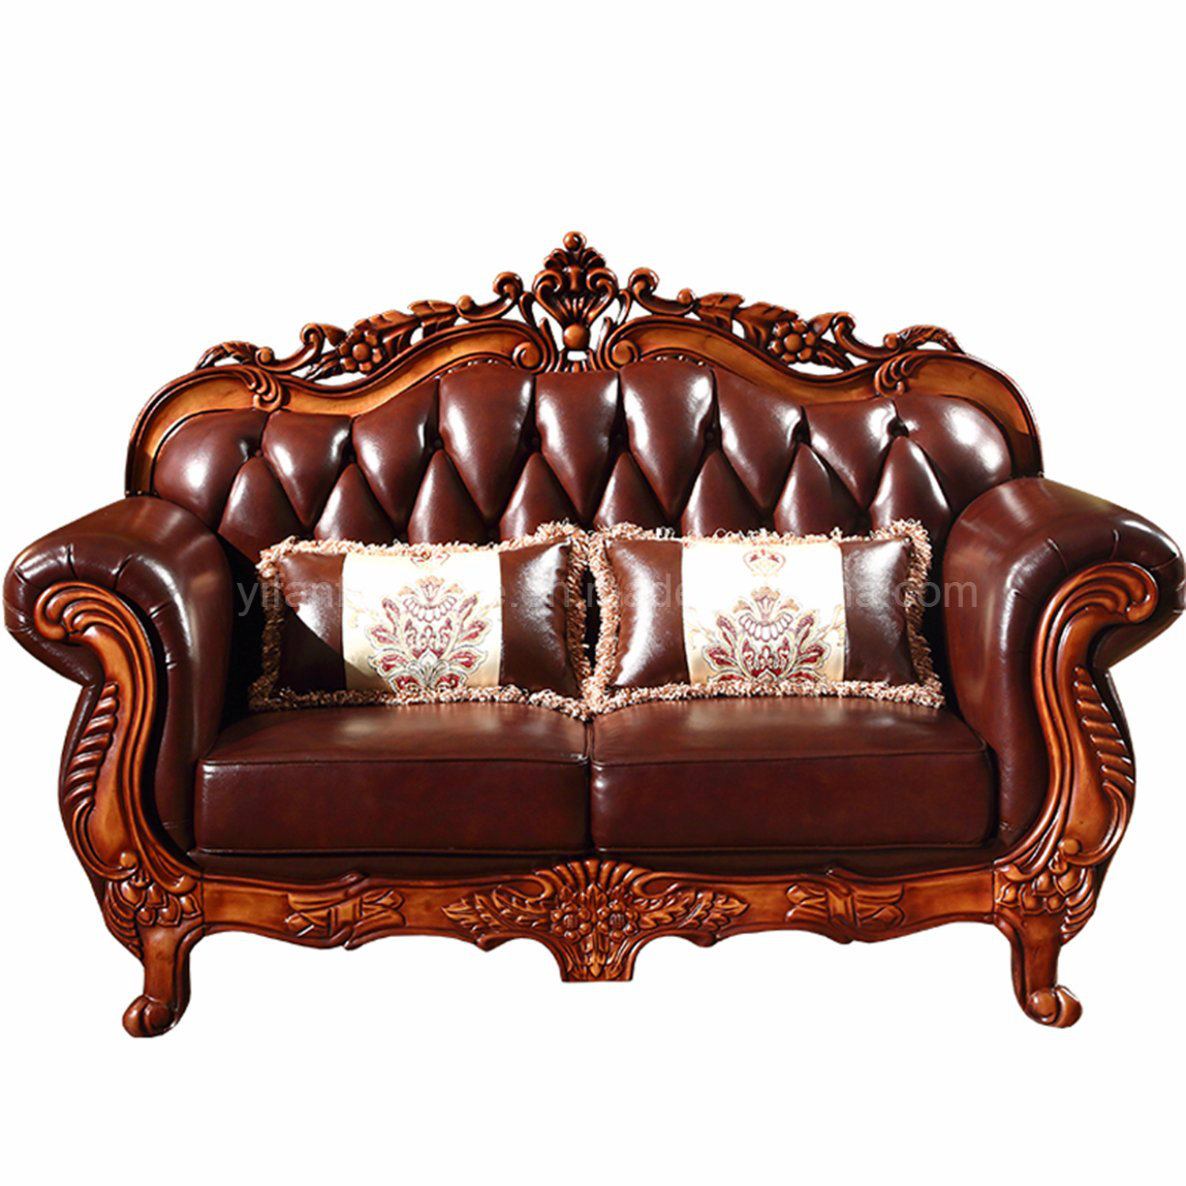 Classic Leather Sofa for Living Room Furniture